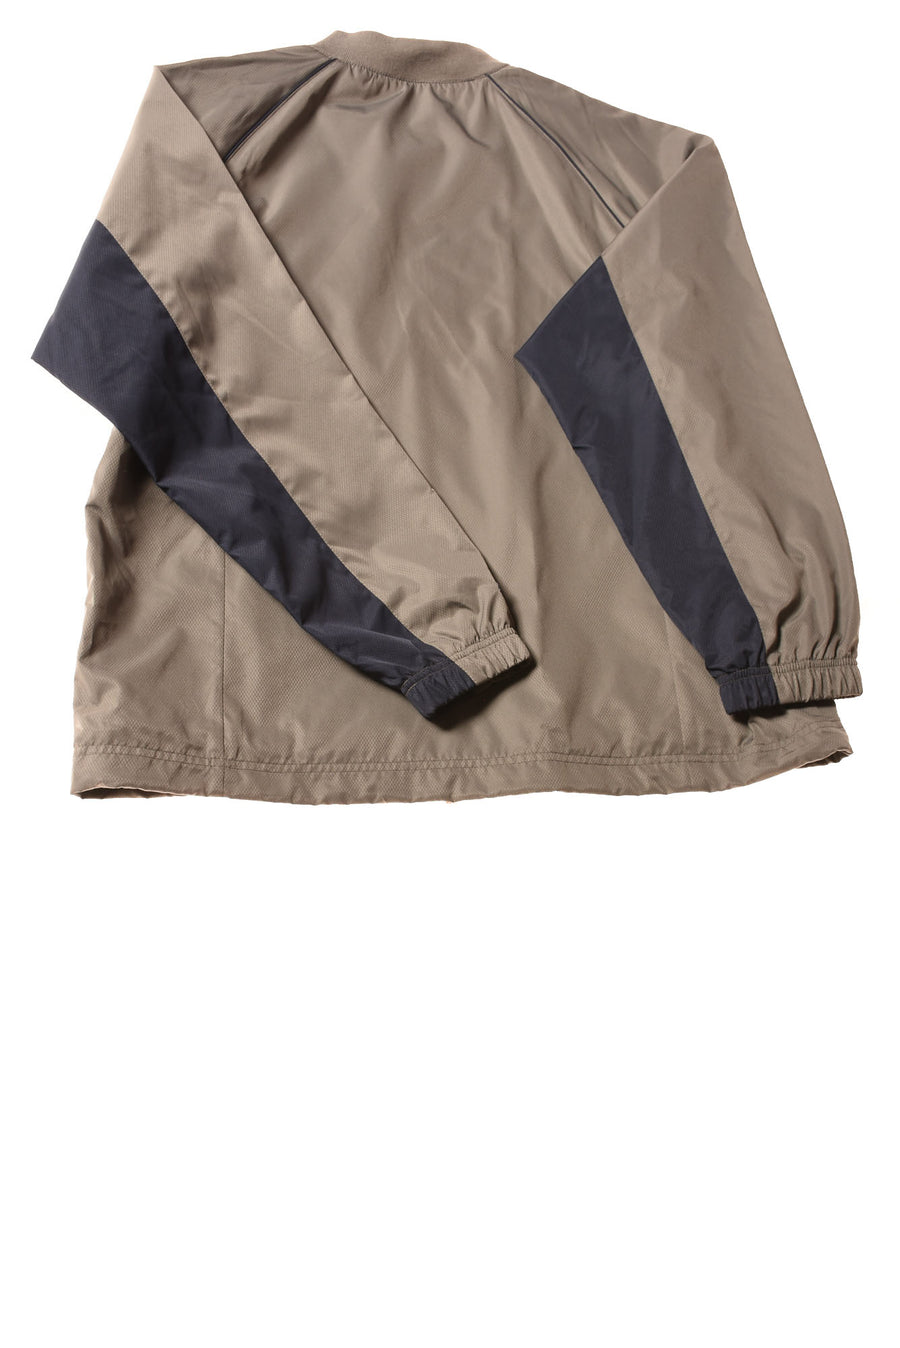 Men's Jacket By Champion